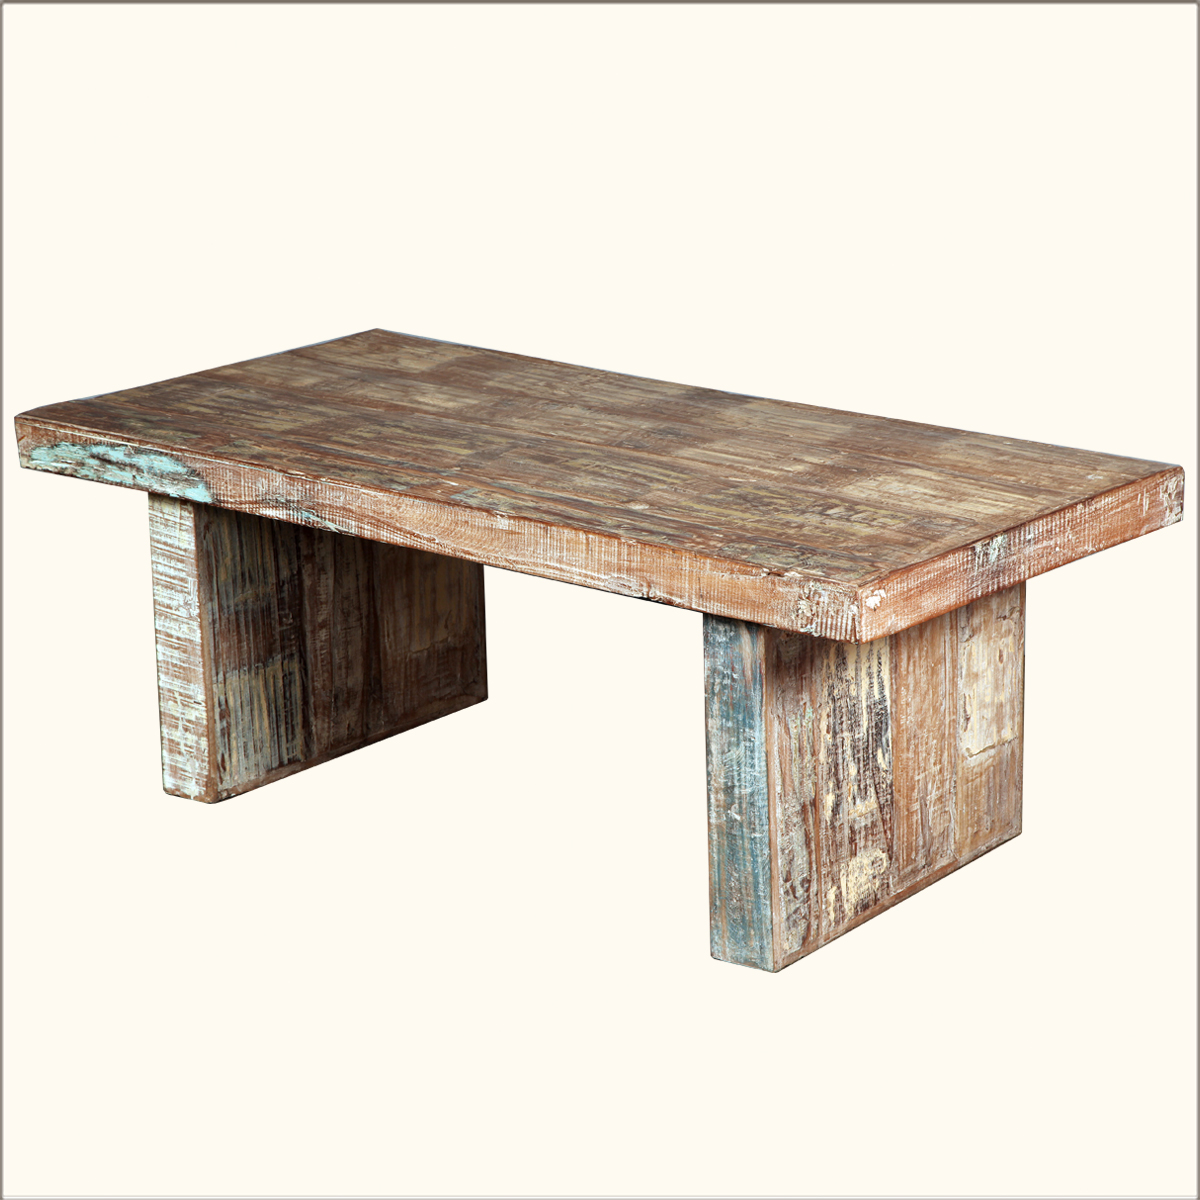 Rustic Reclaimed Wood Coffee Table Distressed Sofa Cocktail Furniture